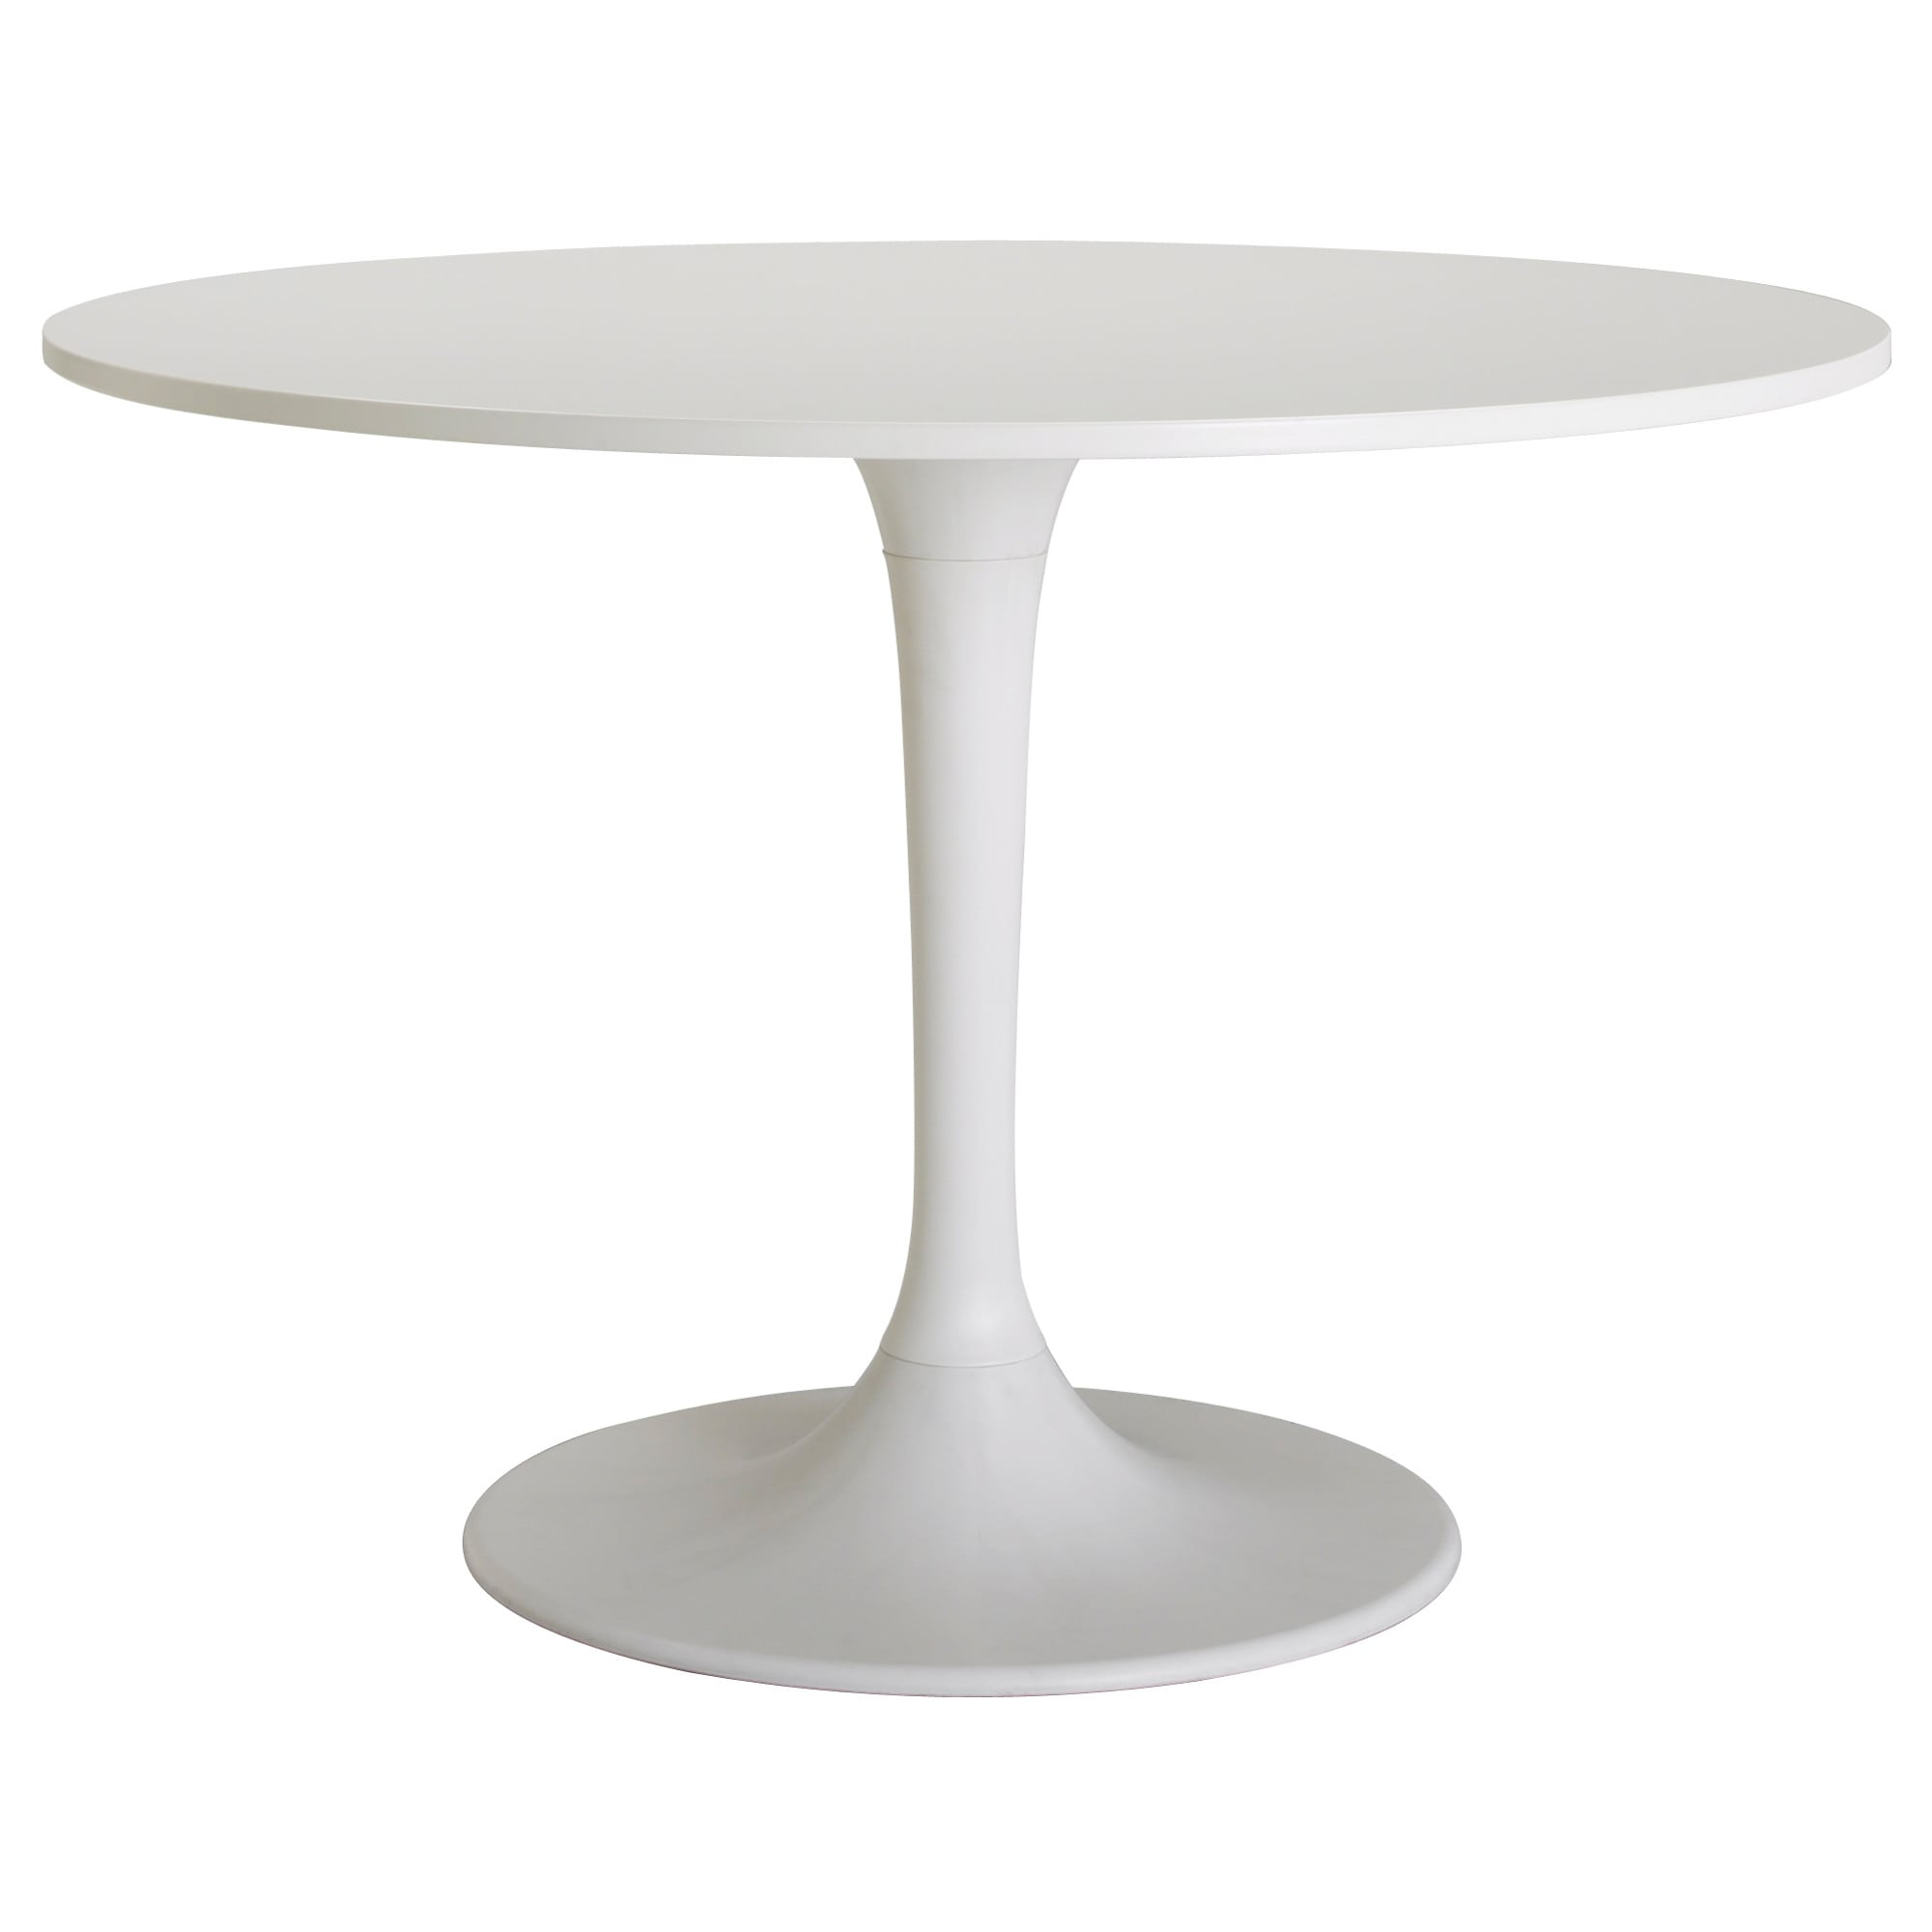 Mobilier Et Decoration Interieur Et Exterieur Ikea Tulip Table White Dining Table